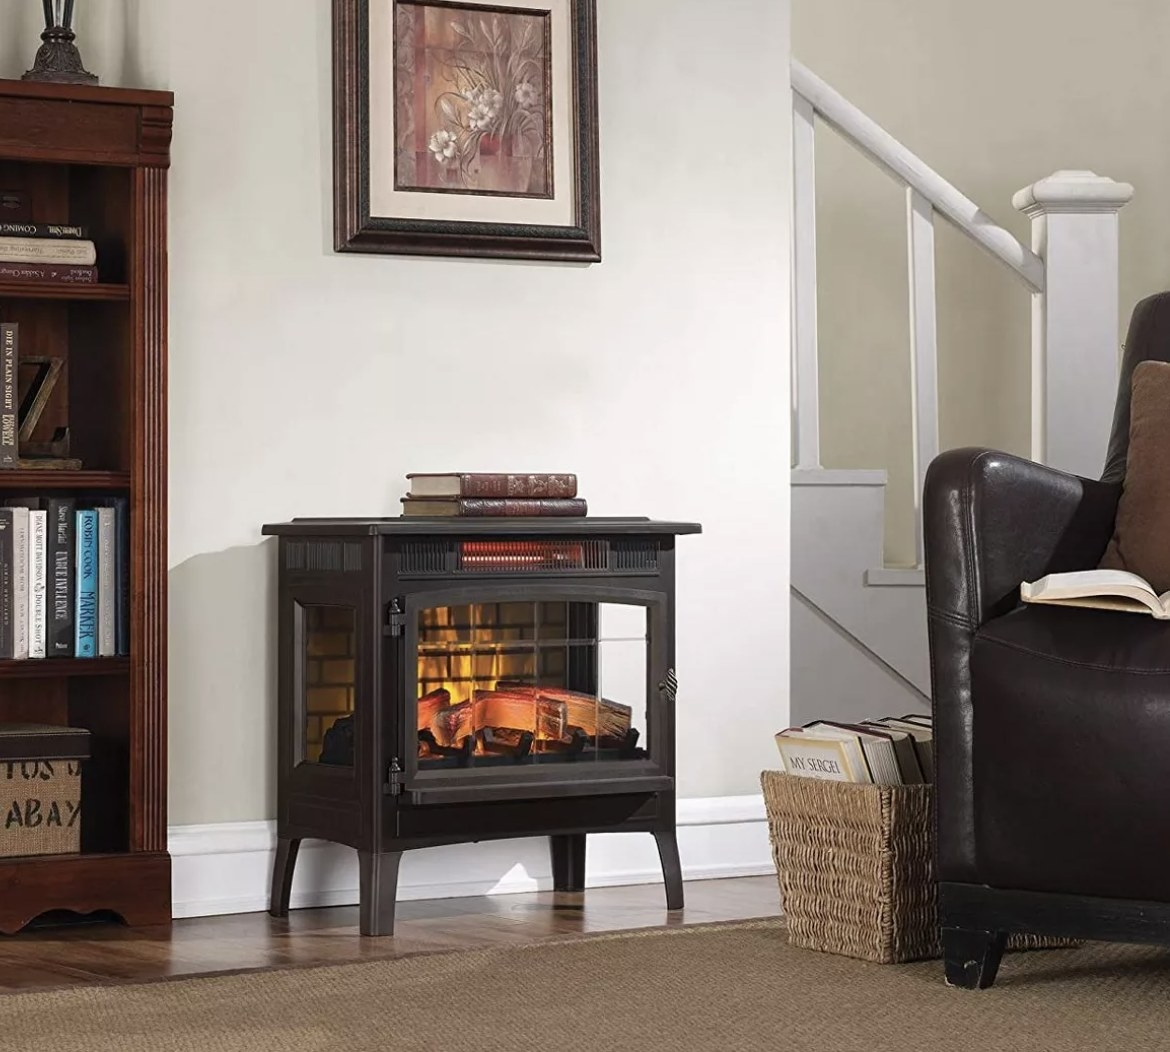 The stove in a living space in a dark wood color